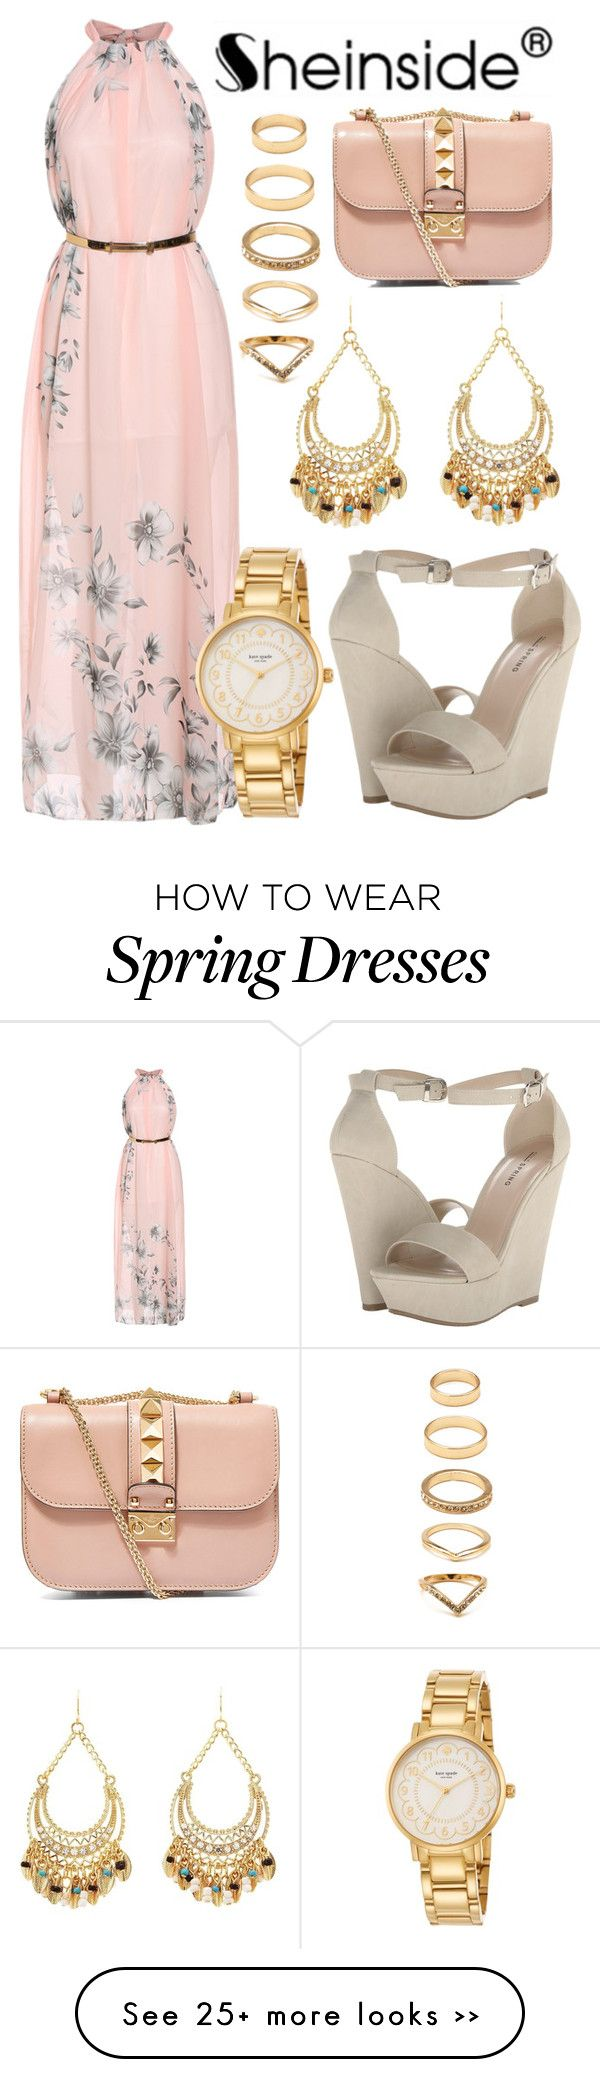 """SheInside"" by deedee-pekarik on Polyvore"